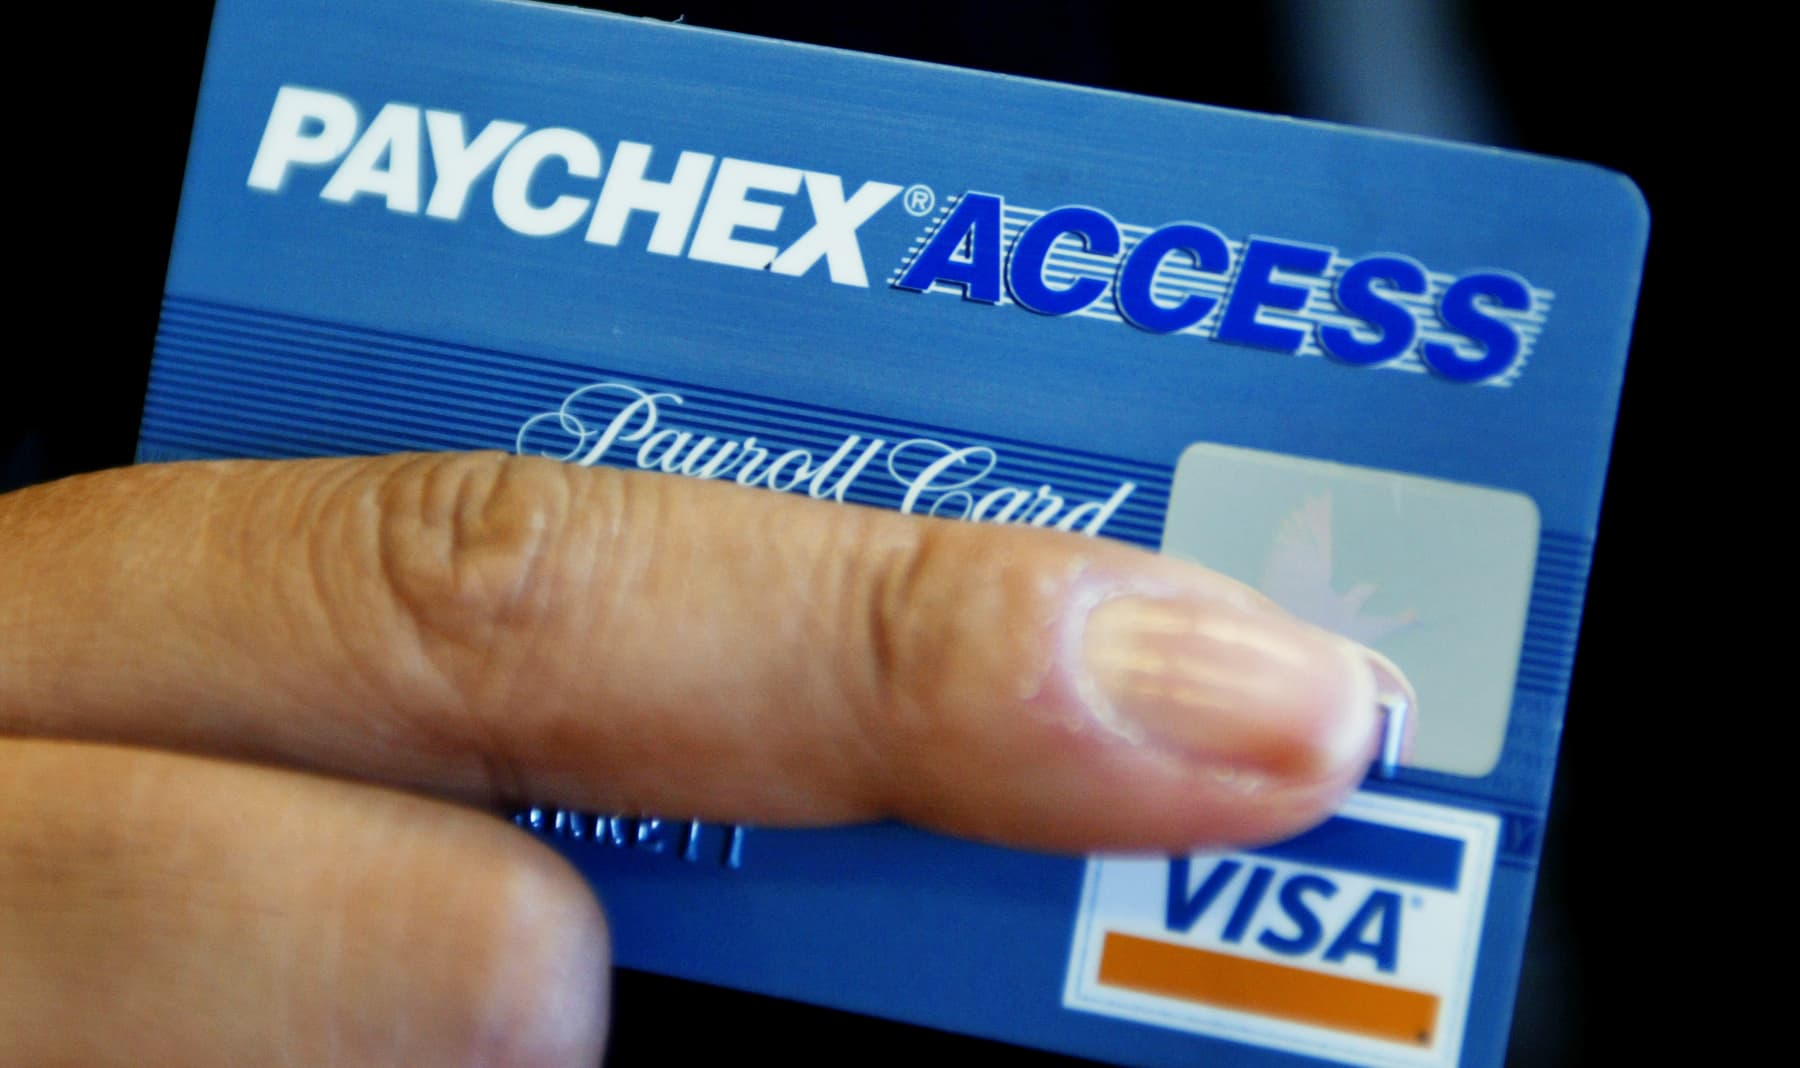 Paychex shares fall after Bank of America downgrades, blaming 'excessive valuation'